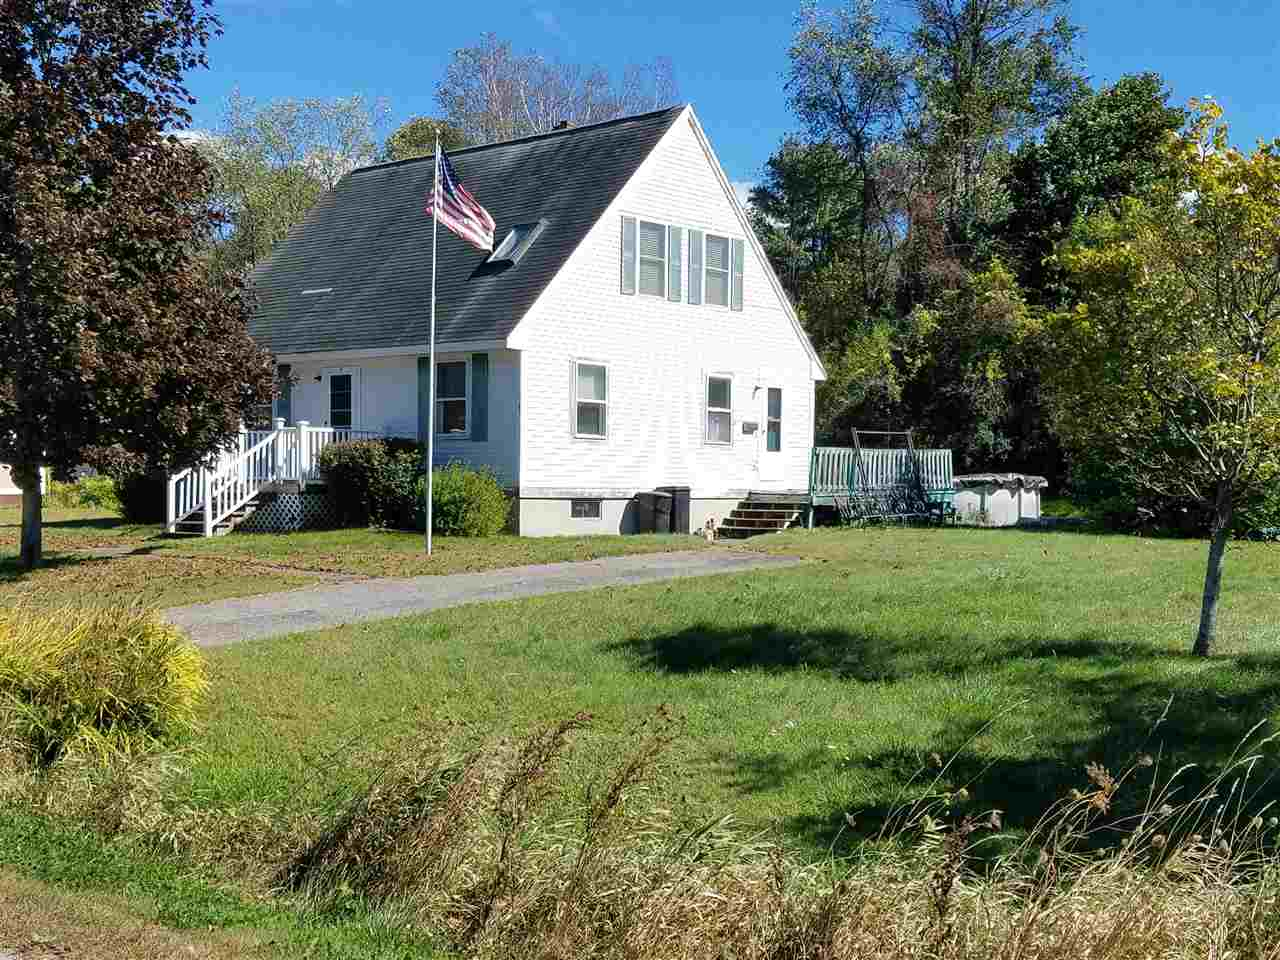 CLAREMONT NH Home for sale $$122,500 | $91 per sq.ft.